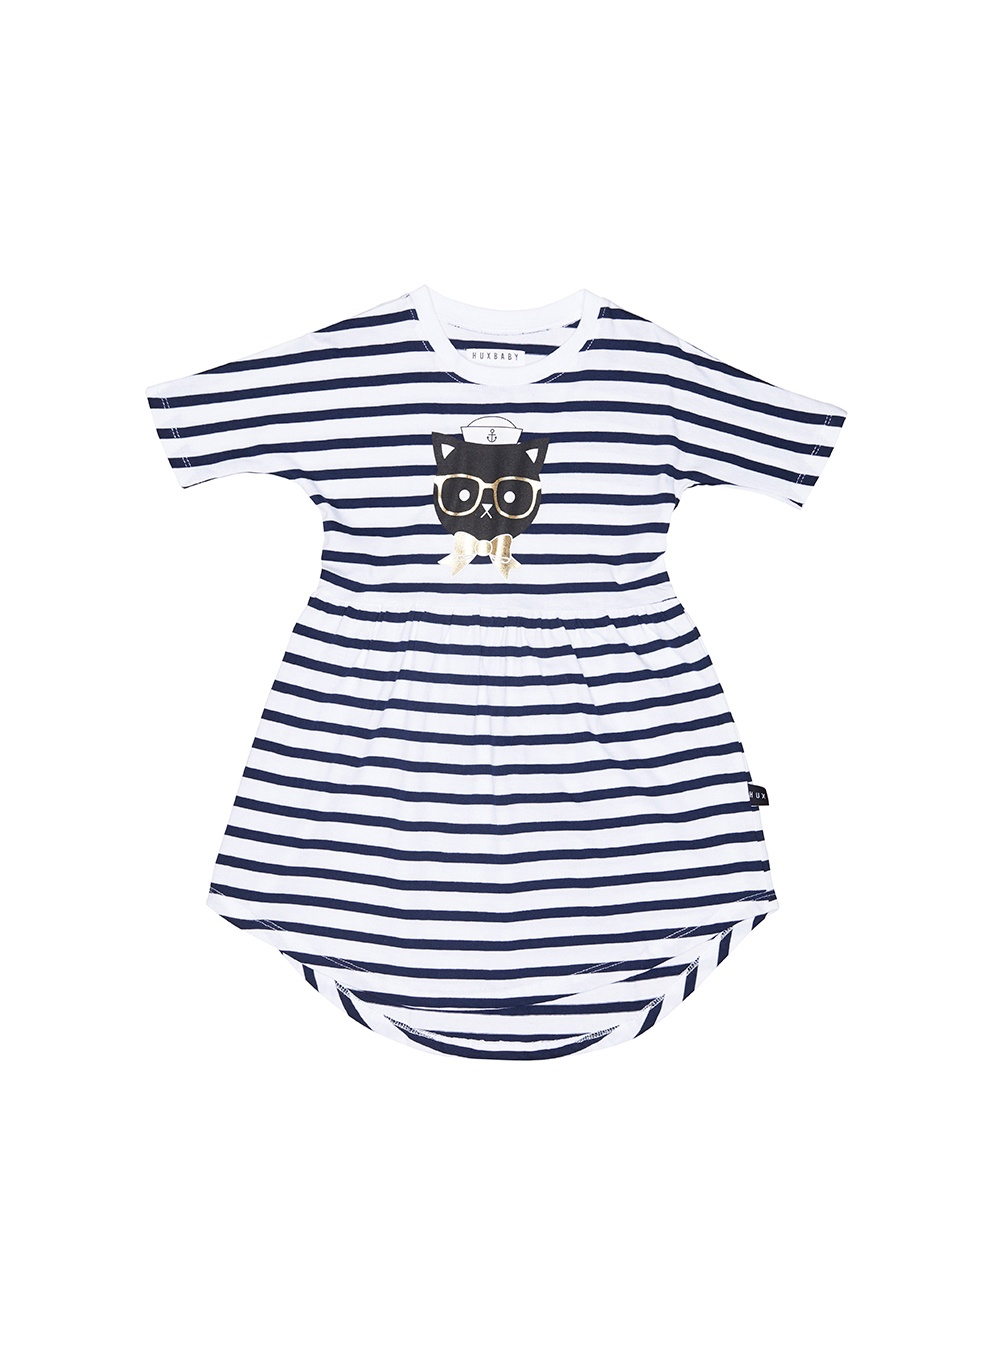 STRIPE SWIRL DRESS KIDS